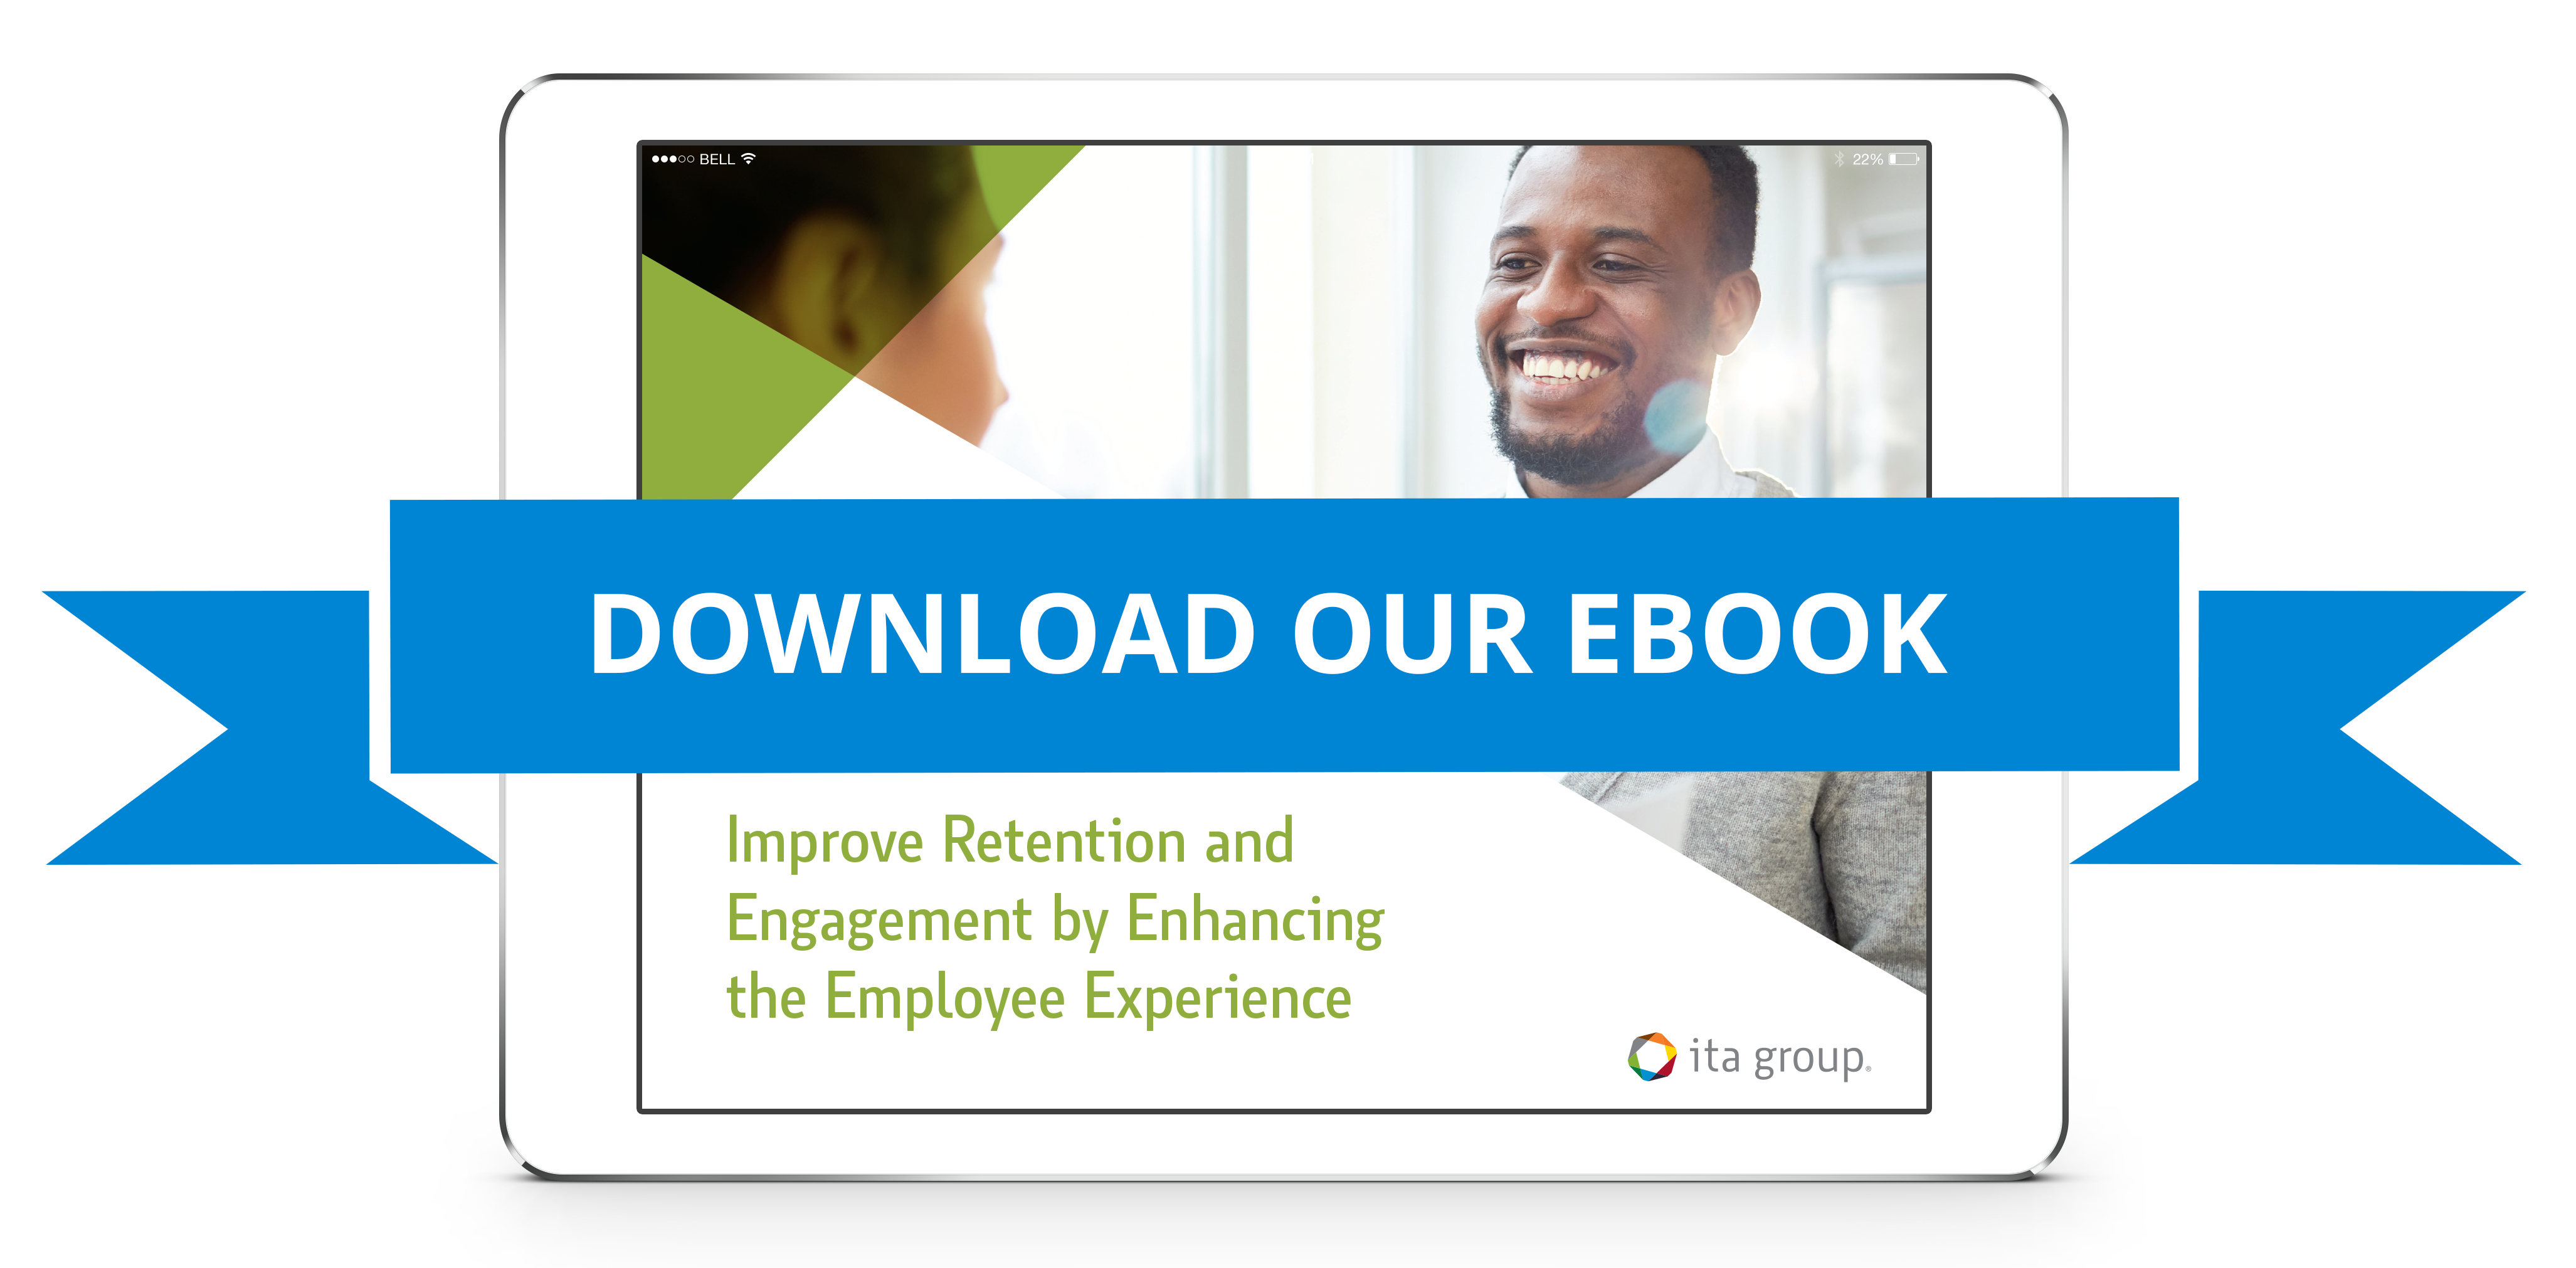 Download the Ebook Now